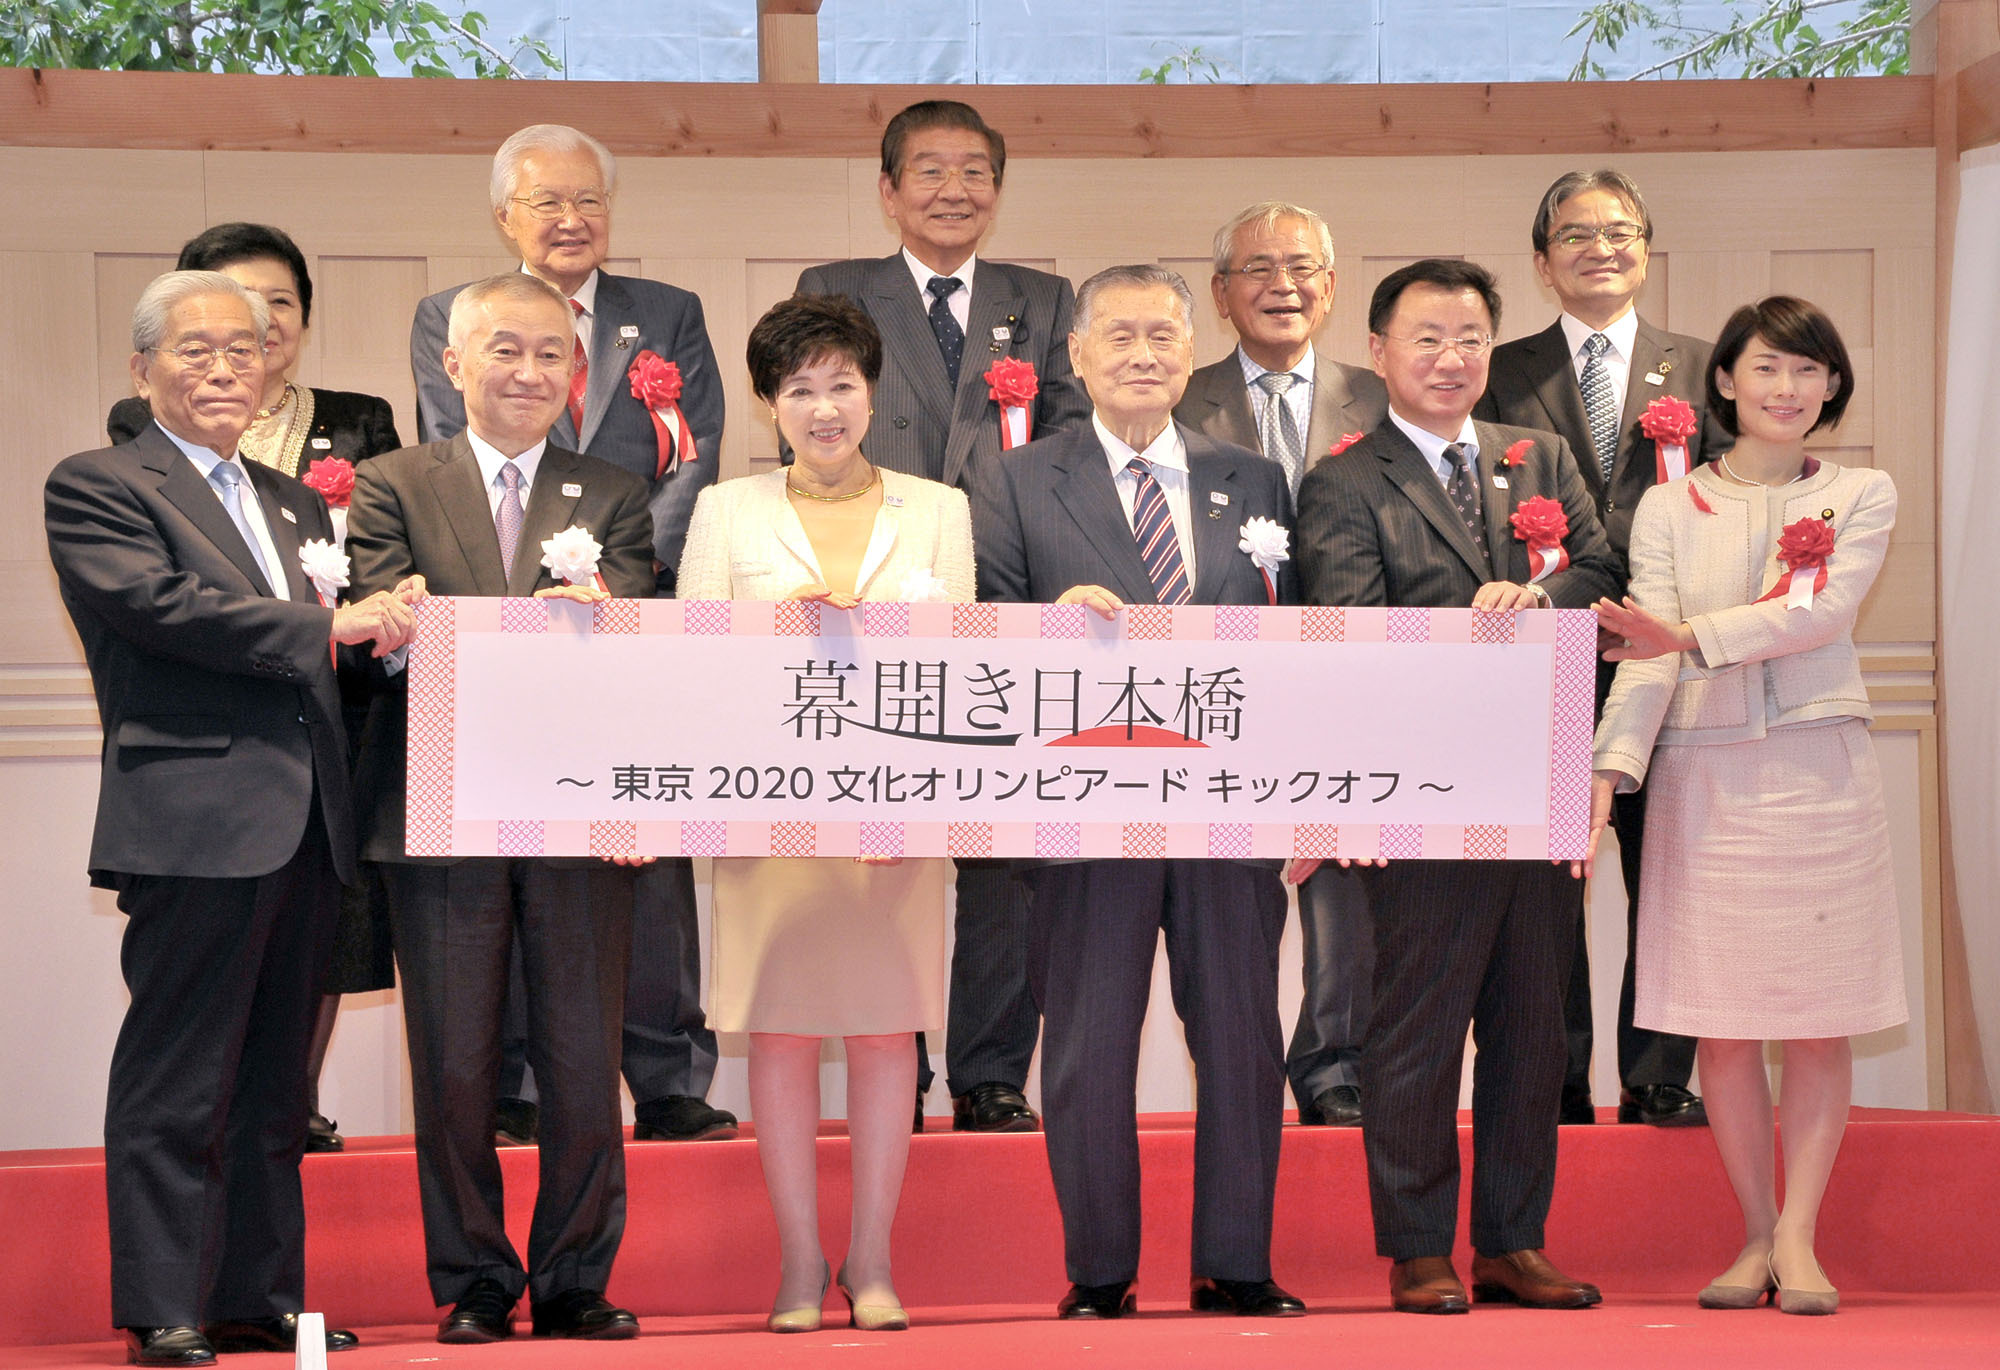 """Front row, from left: Tokyo Metropolitan Foundation for History and Culture Chair Hisashi Hieda; Mitsui Fudosan Co. President and C.E.O. Masanobu Komoda; Tokyo Gov. Yuriko Koike; Tokyo 2020 Olympic Organising Committee President Yoshiro Mori; Minister of Education, Culture, Sports, Science and Technology Hirokazu Matsuno; and Olympics minister Tamayo Marukawa pose with other project members at an opening event for the """"Tokyo 2020 Cultural Olympiad,"""" a four-year art and culture program leading up to the 2020 Games at """"Fukutoku no Mori'' in Nihonbashi, Tokyo on Oct. 7. 